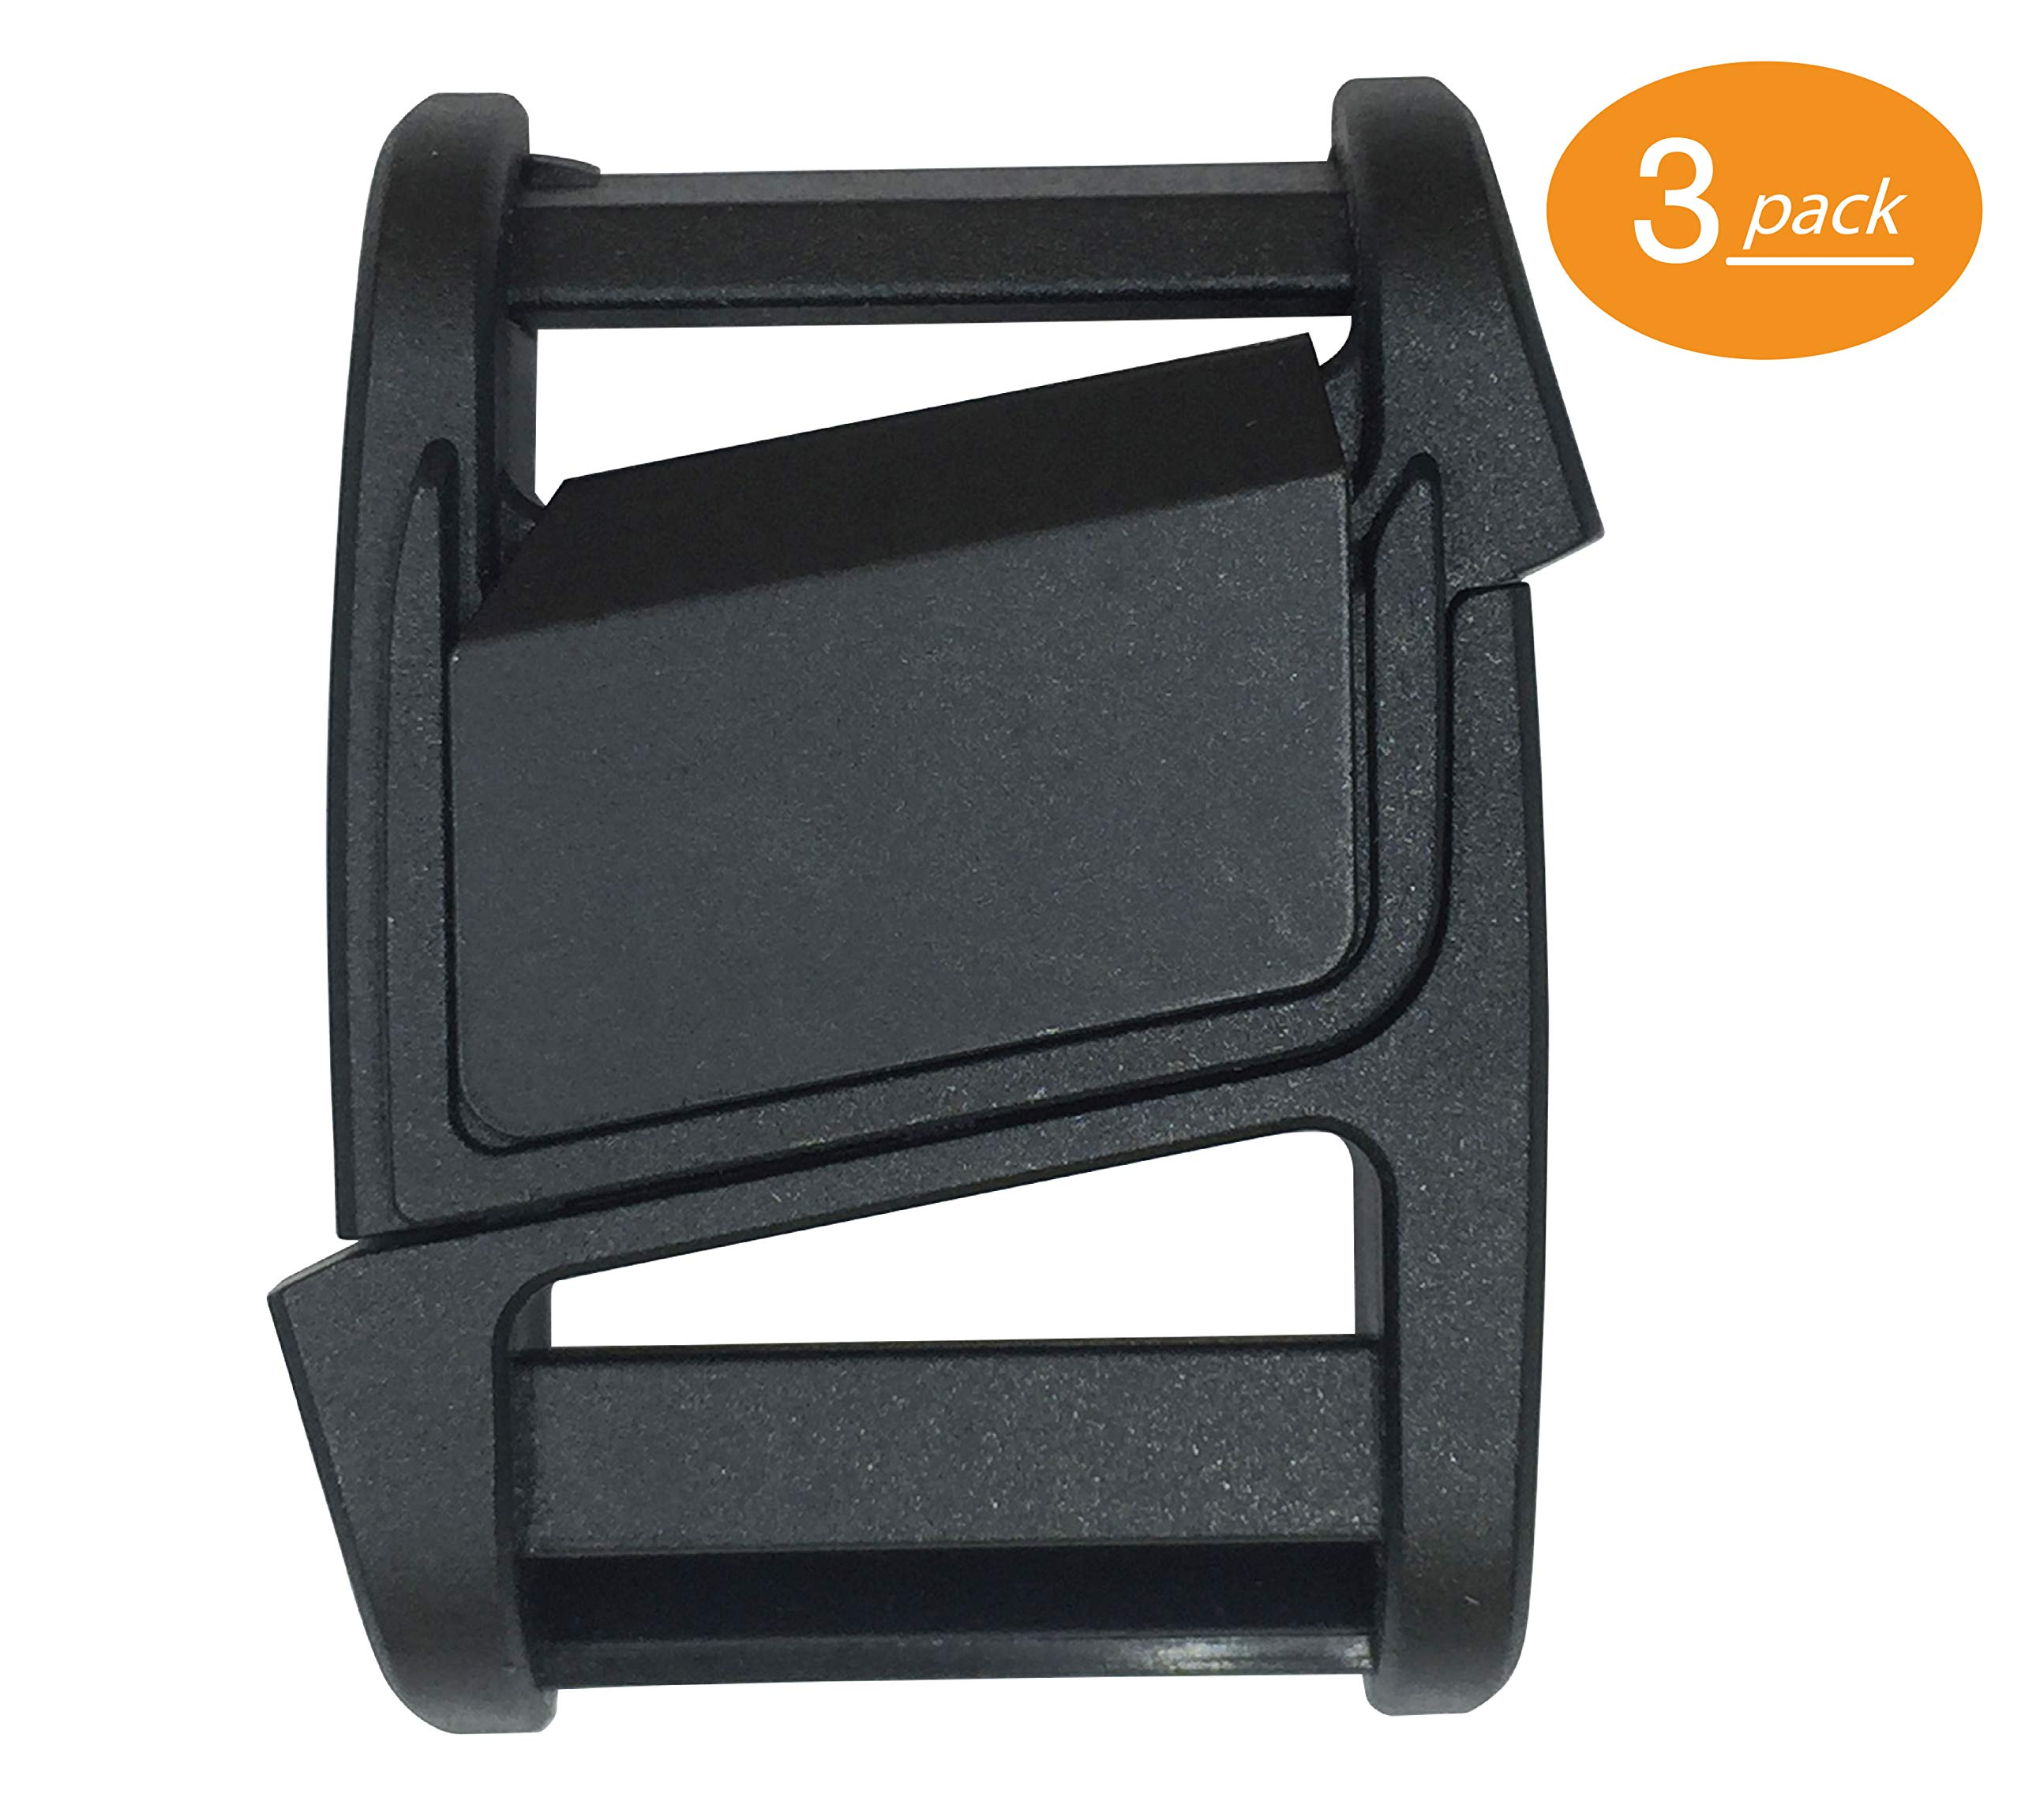 Fidlock Magnetic Buckle Slider - Plastic Quick Release Buckle Replacement - Black (25mm) (Pack of 3) by Fidlock